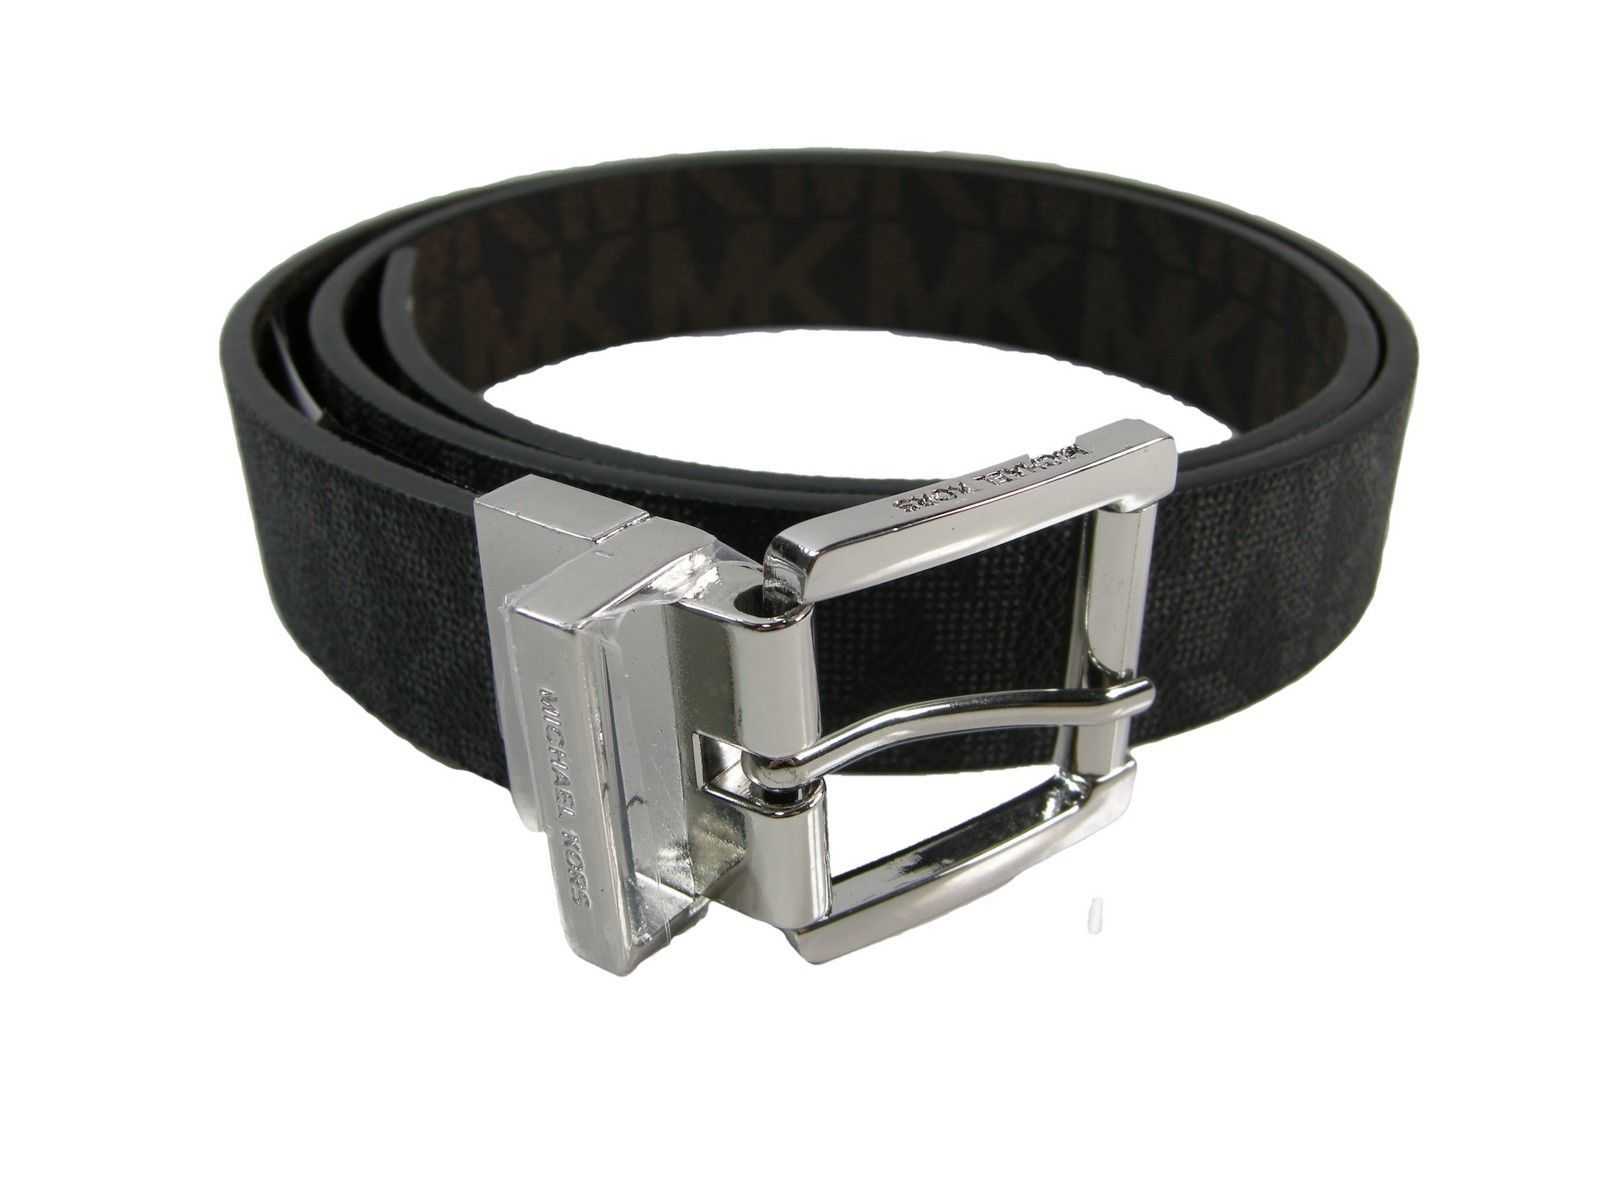 250b07fe4 Michael Kors MK Logo Belt Black Silver and 38 similar items. S l1600